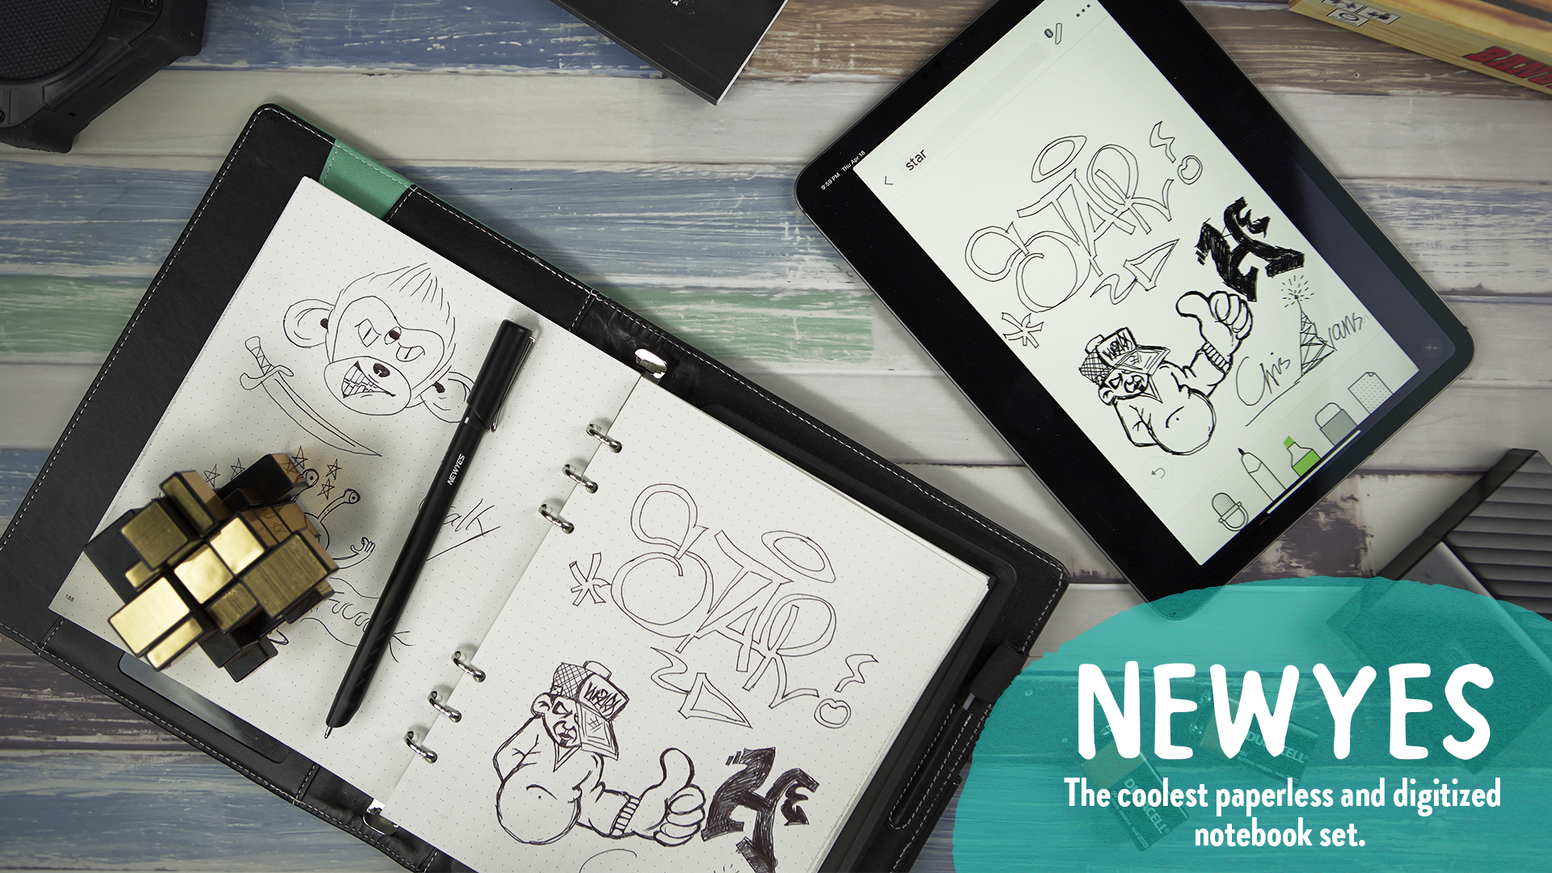 Newyes: The Coolest Paperless and Digitized Notebook Set by